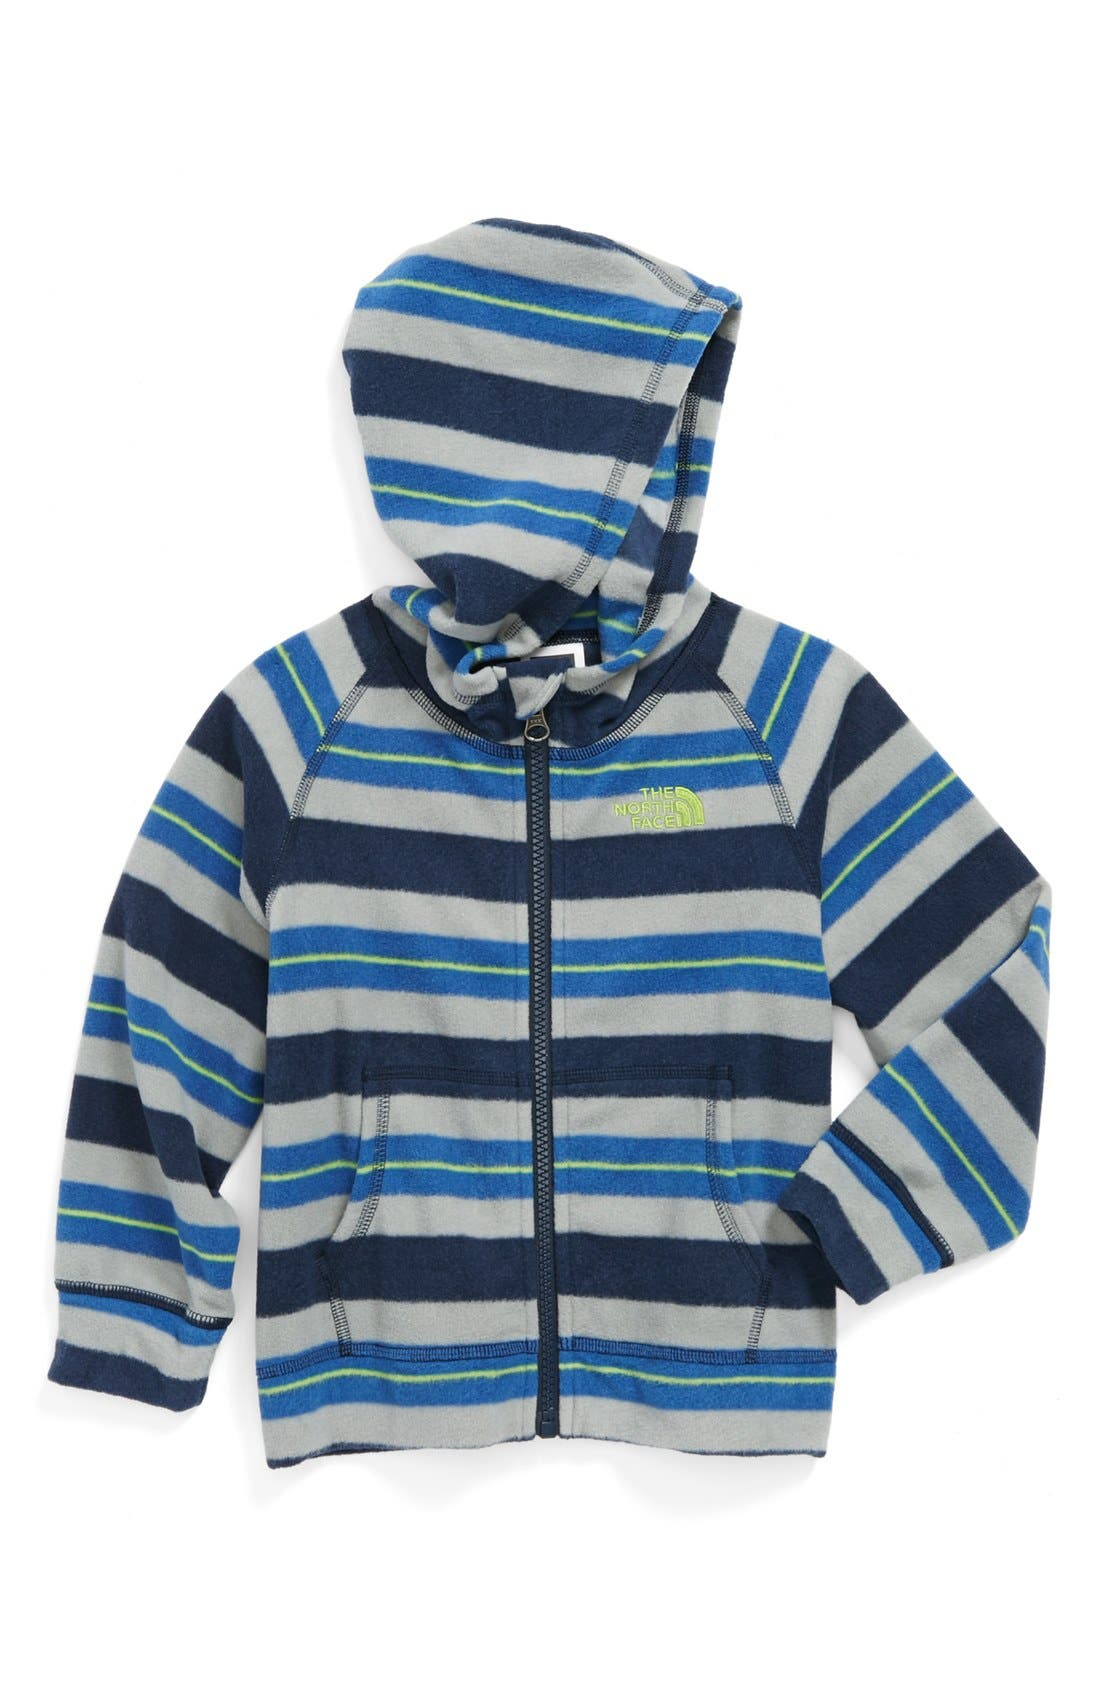 Alternate Image 1 Selected - The North Face 'Glacier' Hoodie (Toddler Boys)